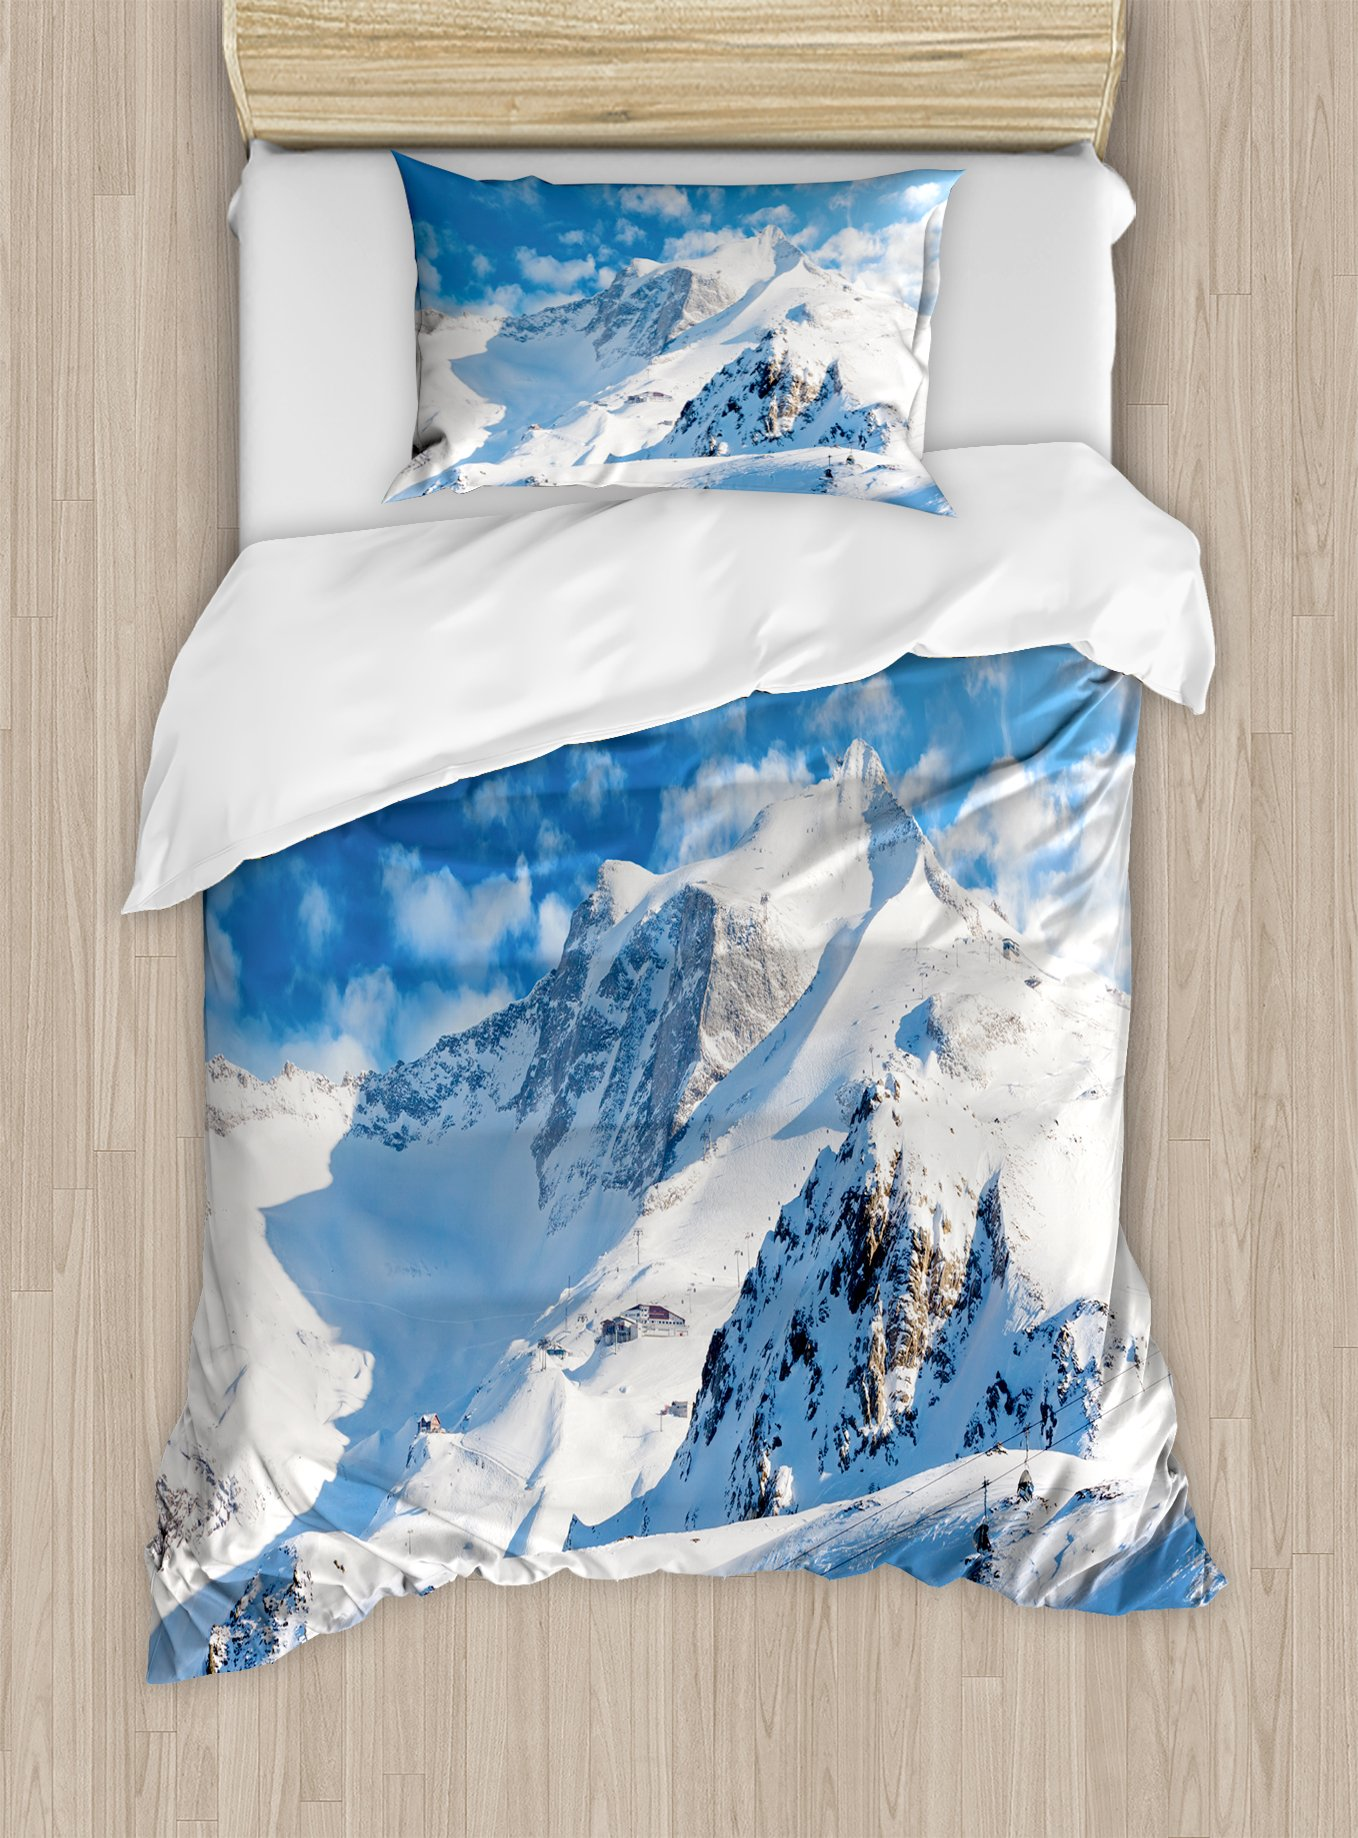 Ambesonne Mountain Duvet Cover Set Twin Size, Mountain Landscape Ski Slope Winter Seasonal Sport Telfer and Snowboarding Image, Decorative 2 Piece Bedding Set with 1 Pillow Sham, White Blue